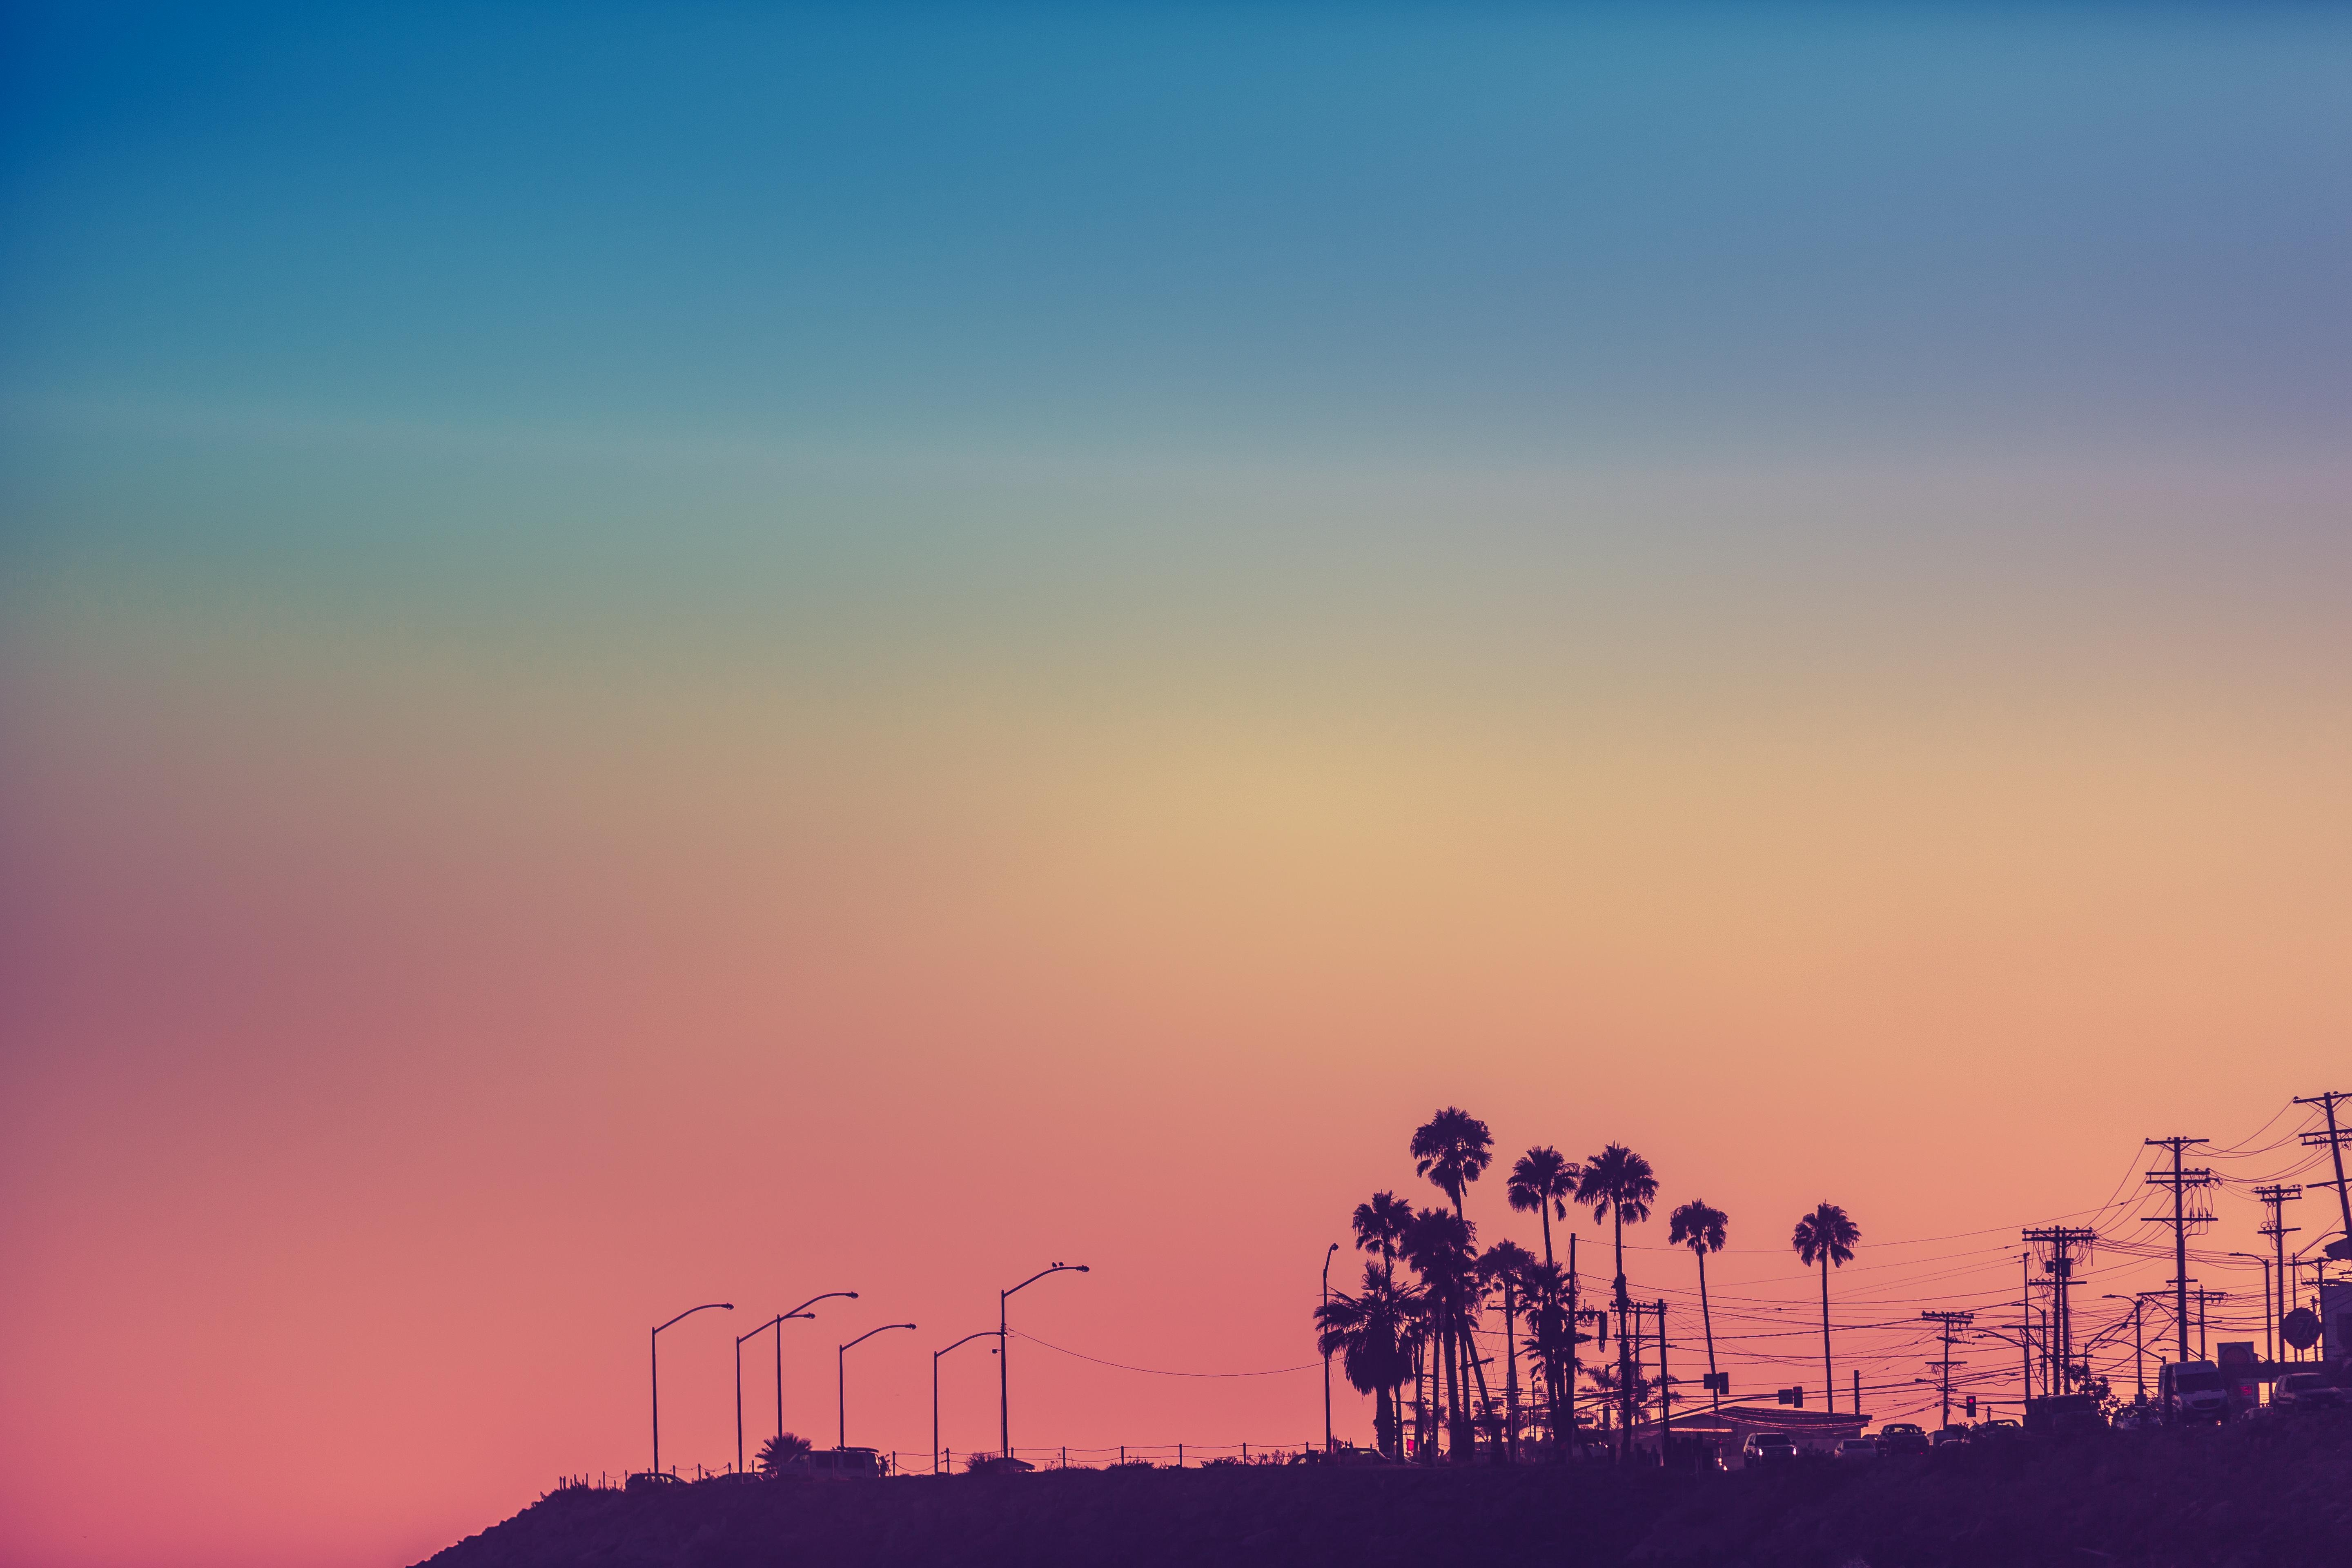 Good Wallpaper Macbook Los Angeles - los-angeles-california-at-sunset-wallpaper  Trends_75633.jpg